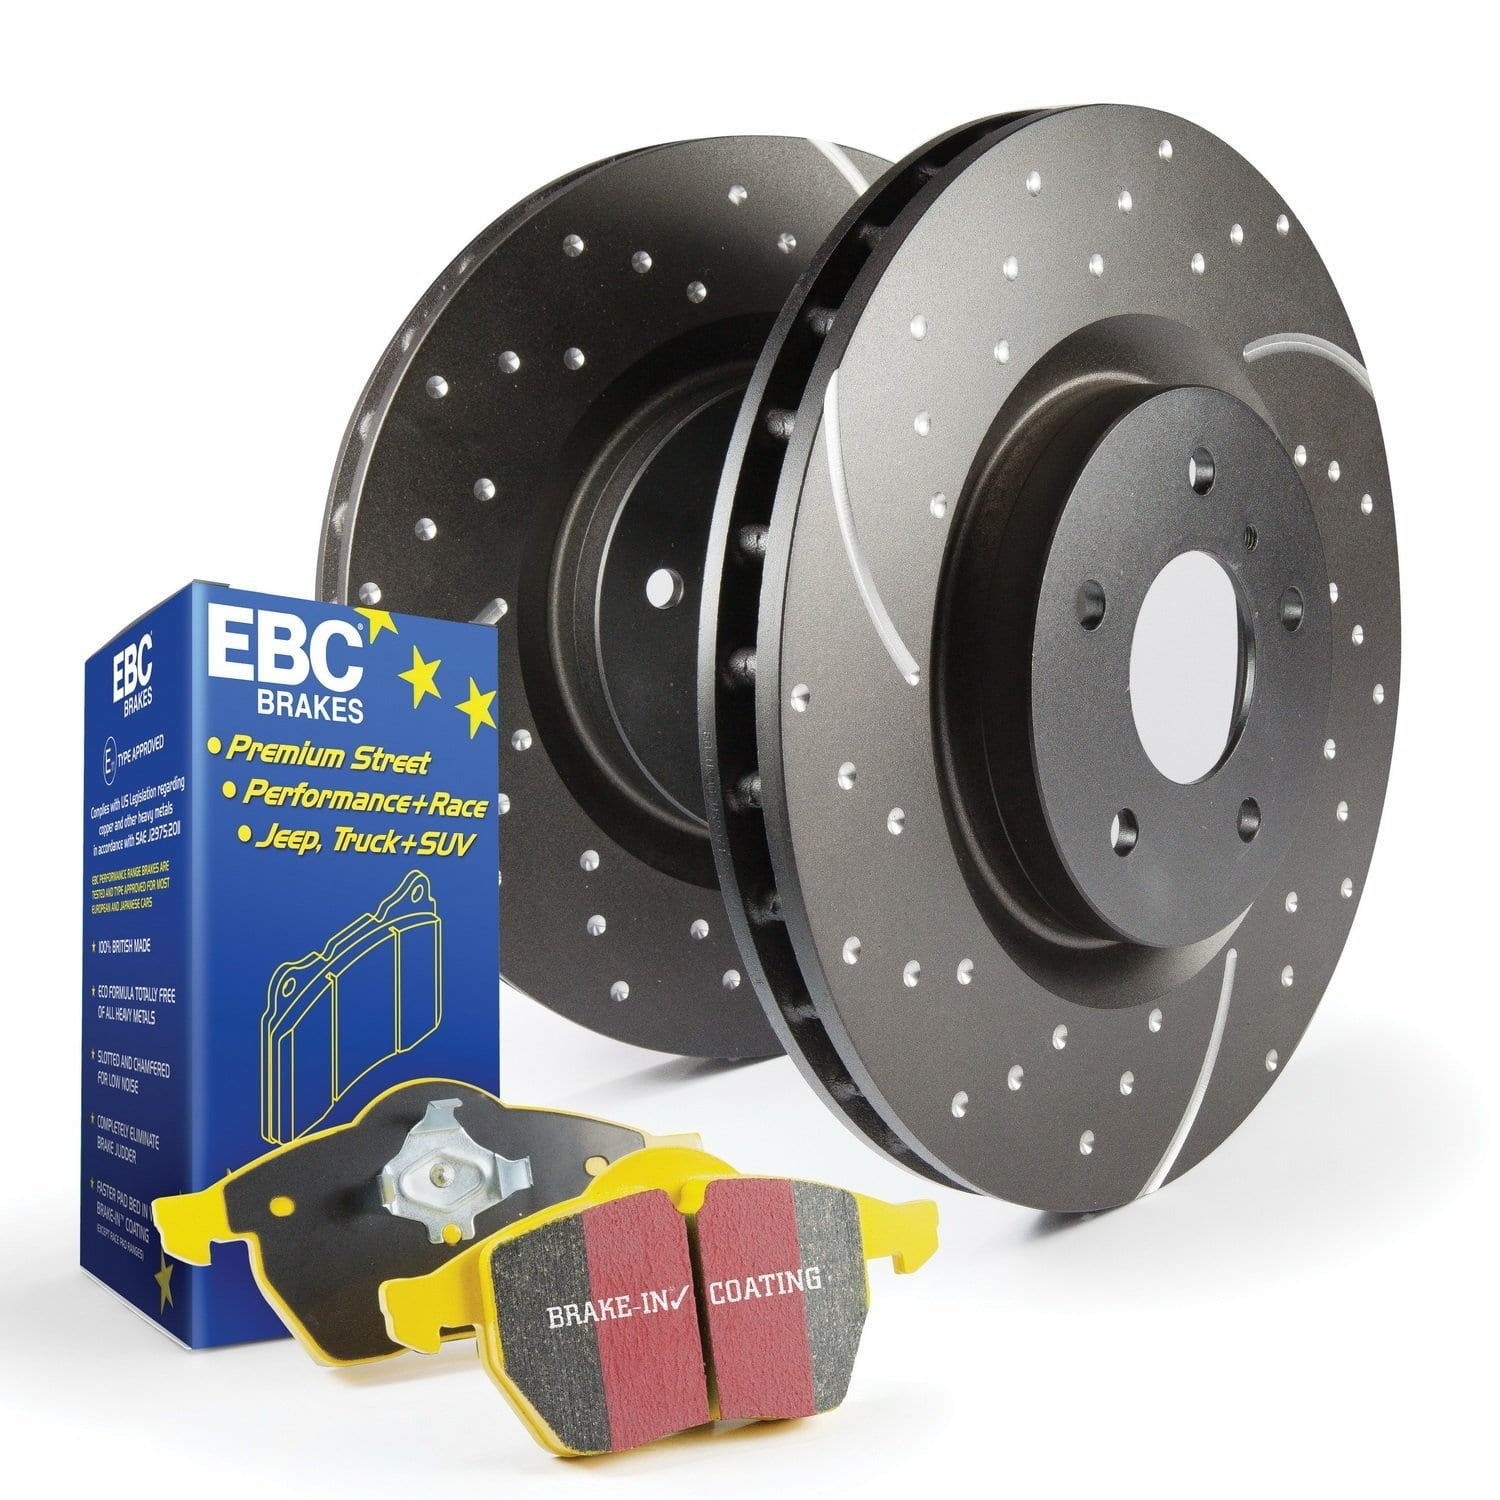 EBC Brake pad clearance at Amazon - some over 90% off.